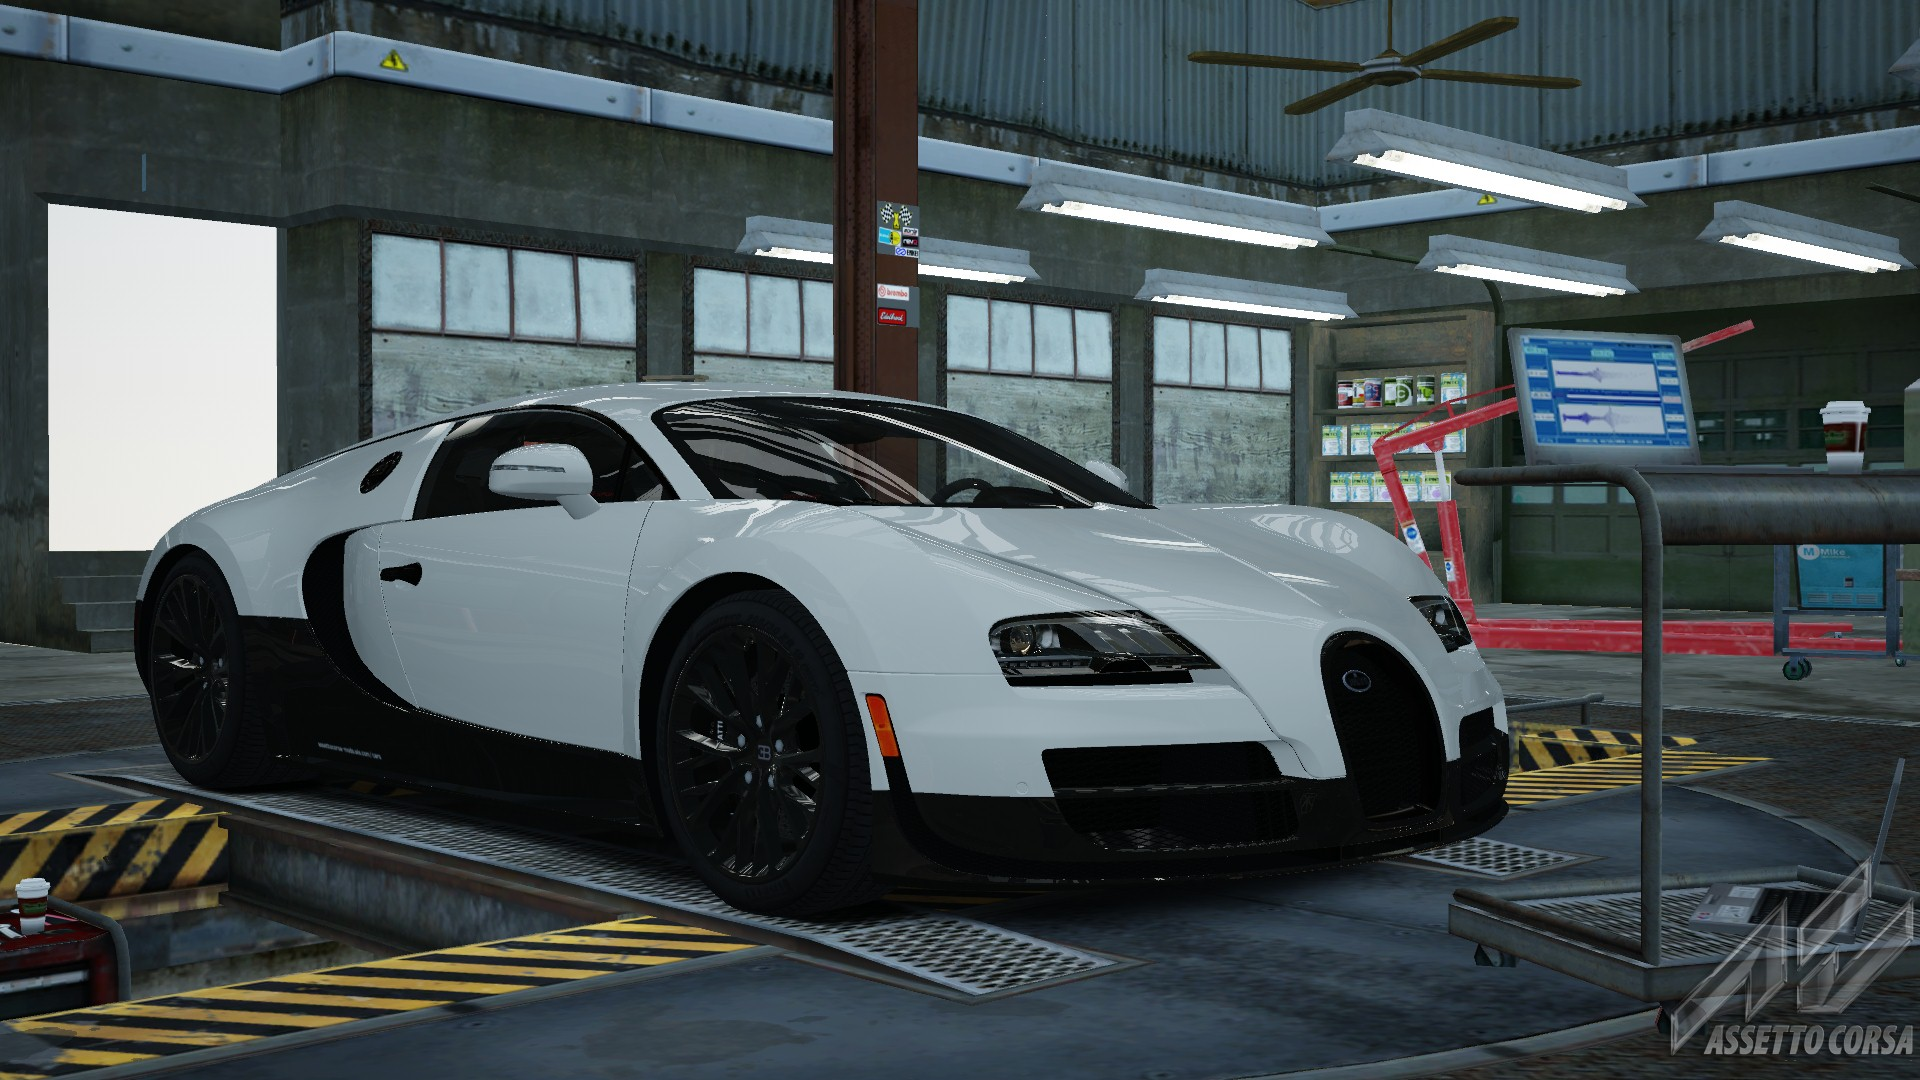 bugatti veyron super sport bugatti car detail assetto corsa database. Black Bedroom Furniture Sets. Home Design Ideas